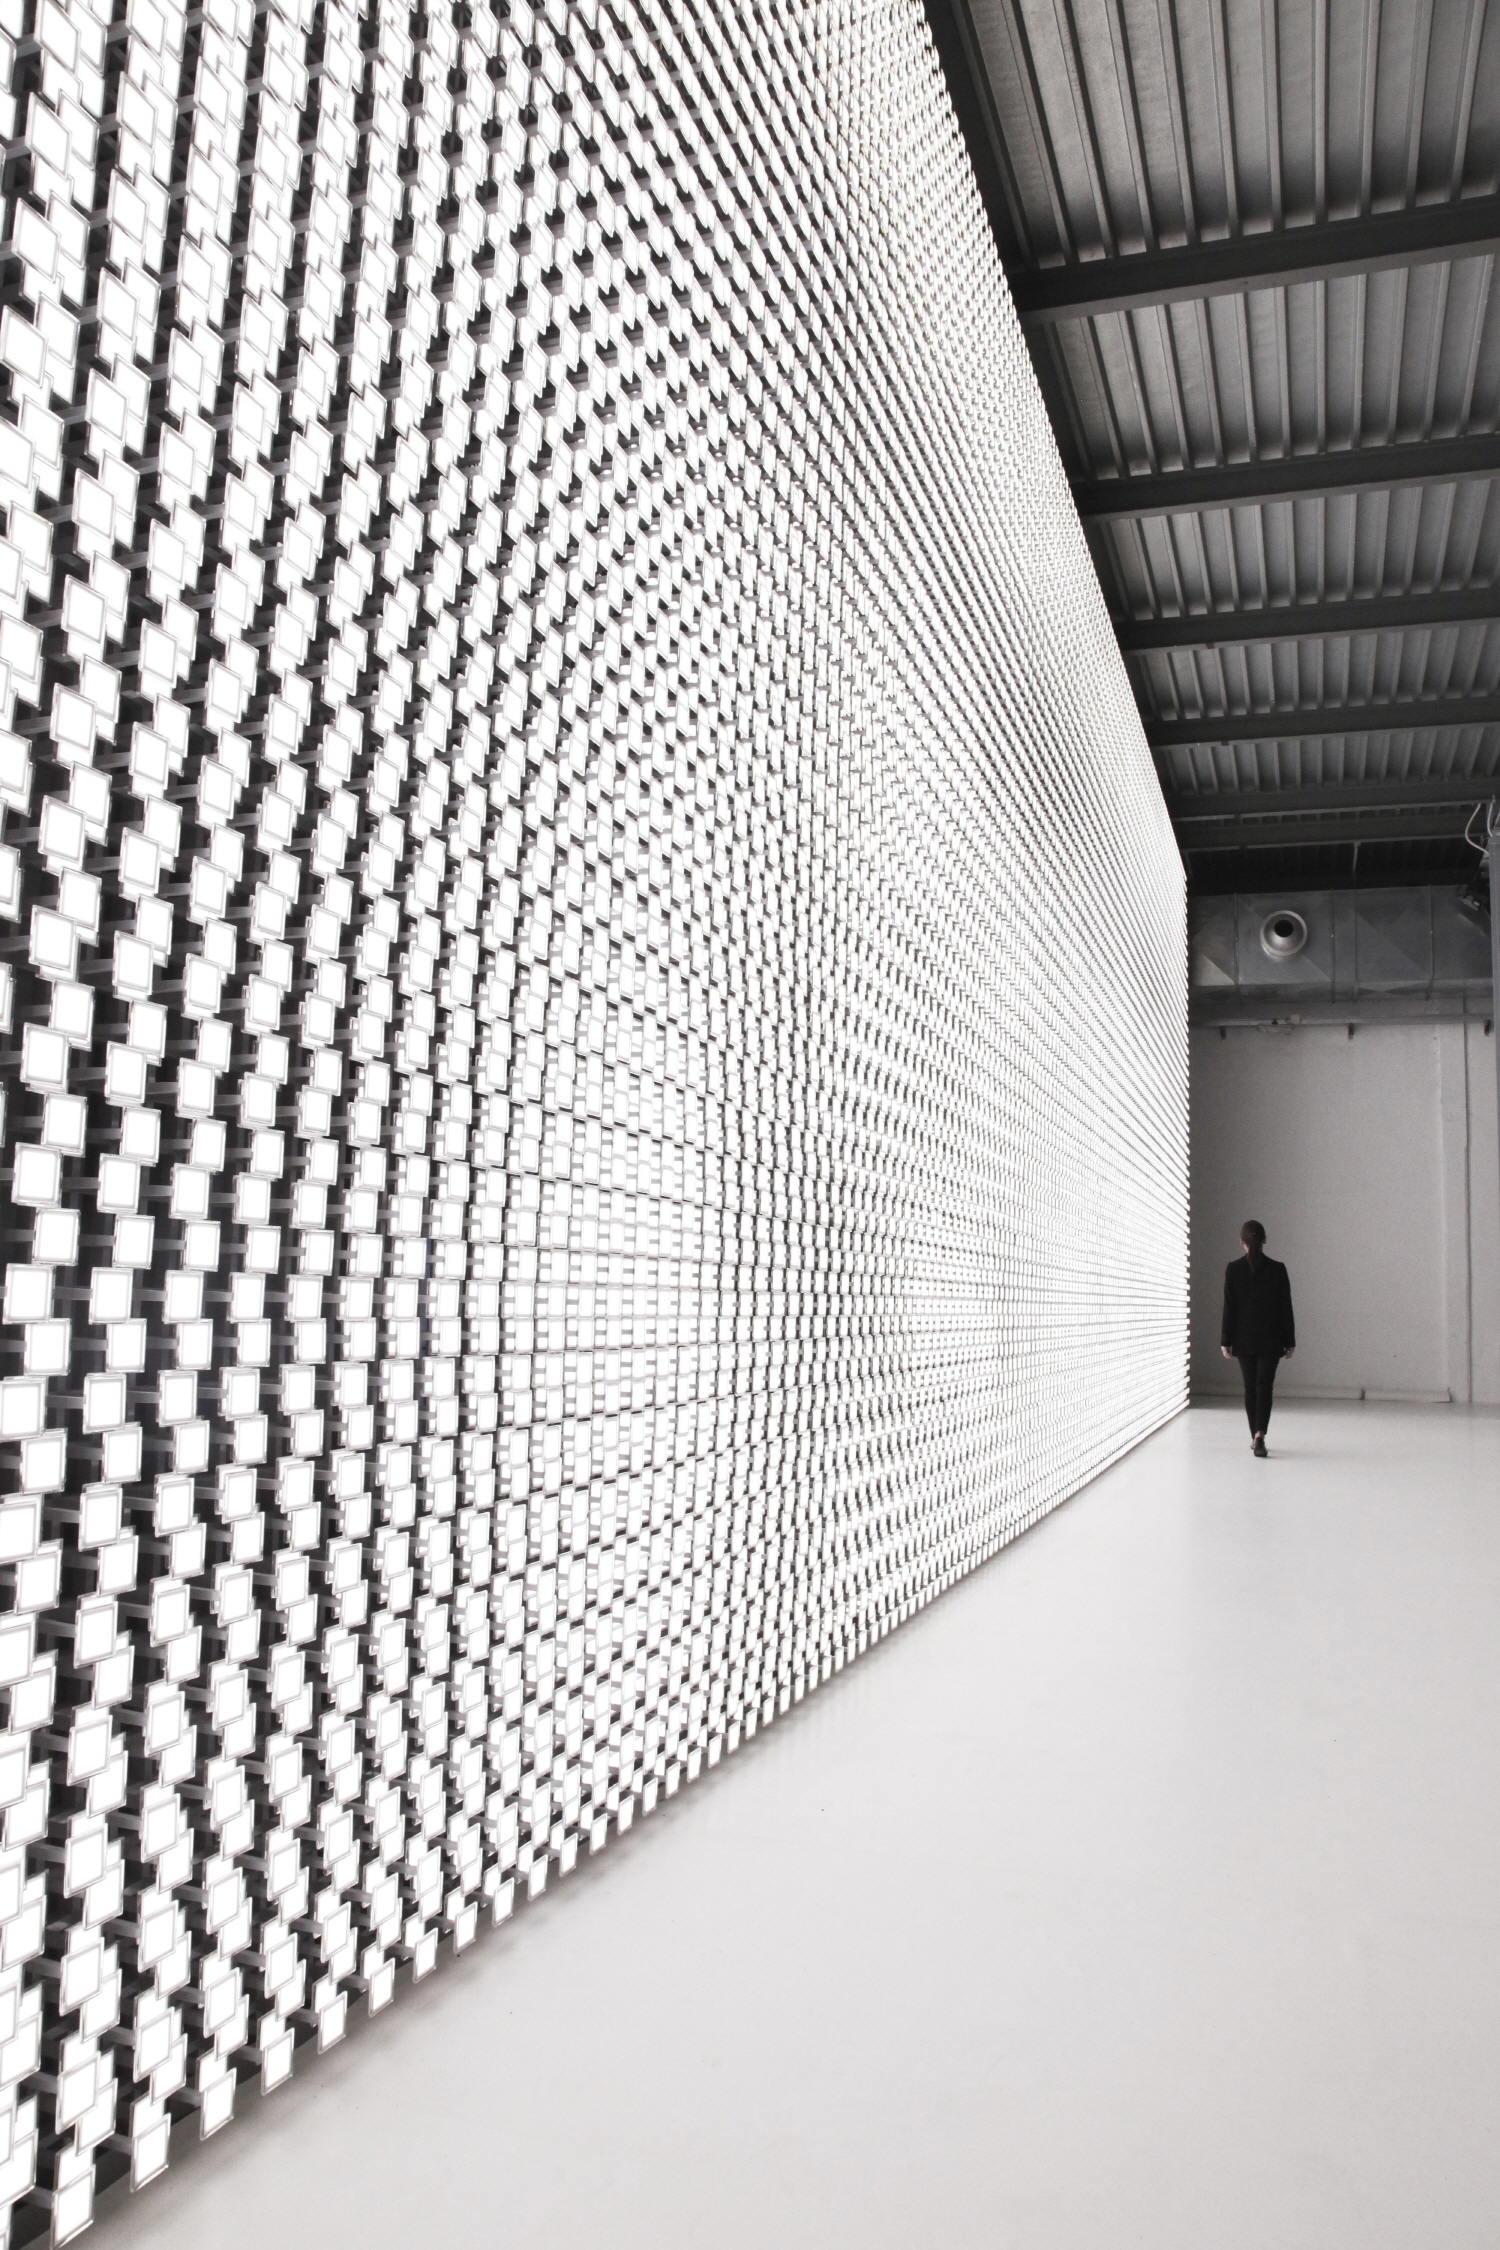 LG's design philosophy taps into human-centric technologies, and is embodied by Tokujin Yoshioka's Wall of the Sun